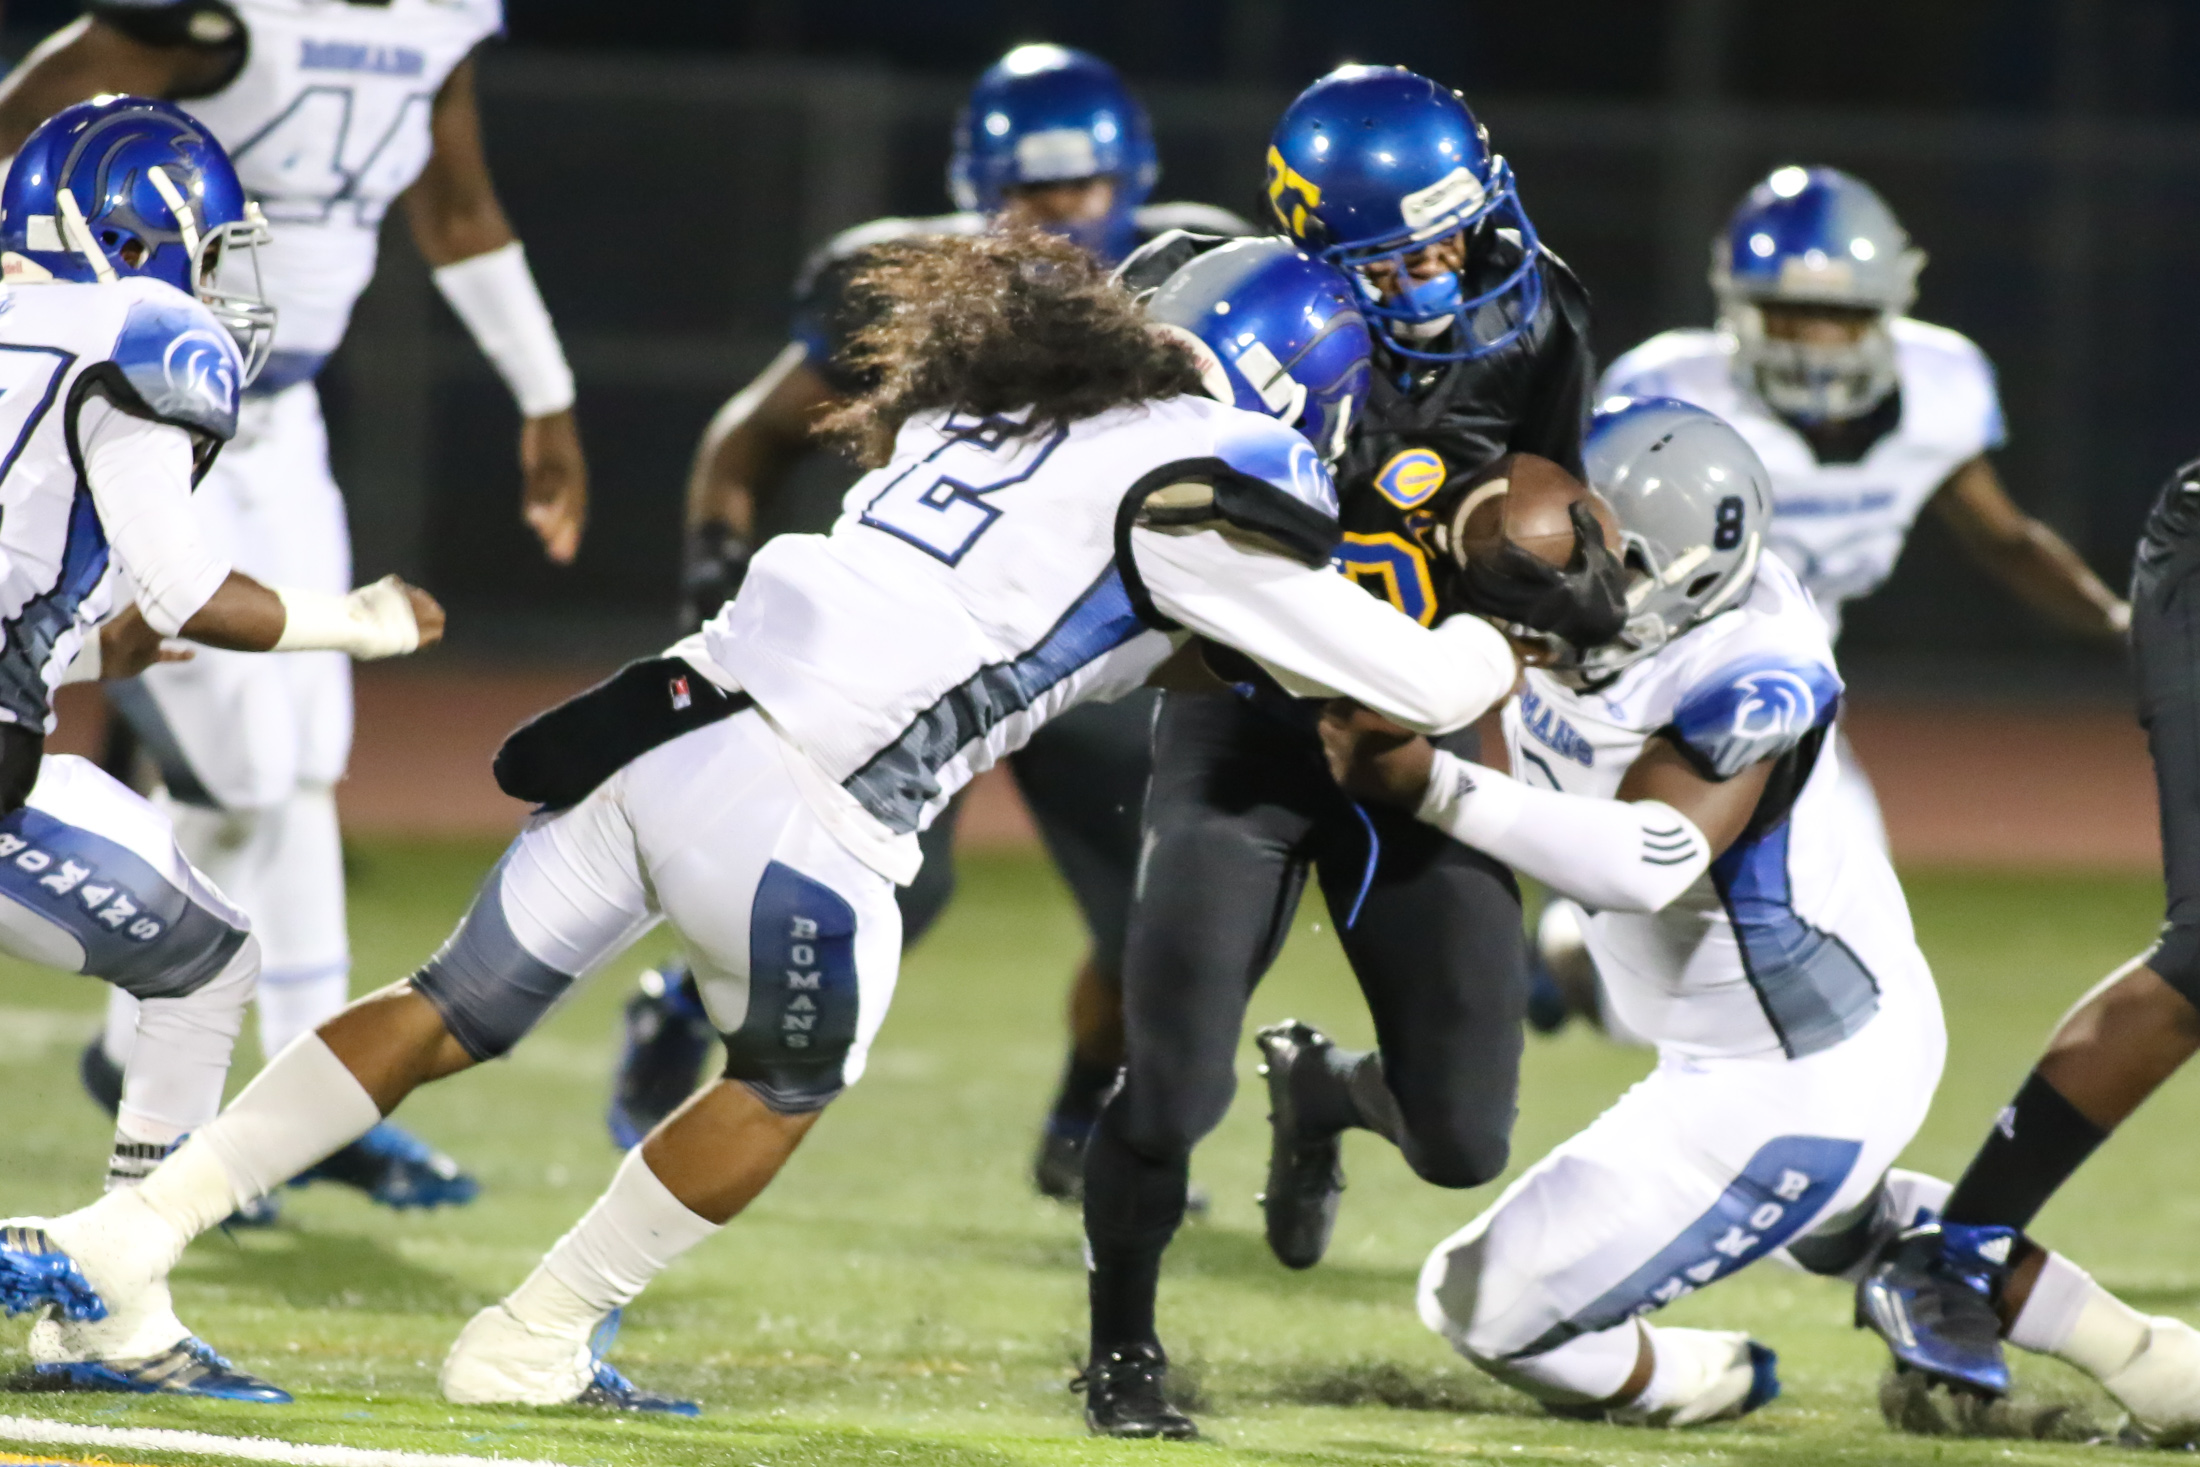 09 Oct. 2015: LA Roman (2) linebacker Elijah Thompson with big hit on Crenshaw Running back (27) Aundre Carter. (Photo By Jevone Moore/Full Image 360